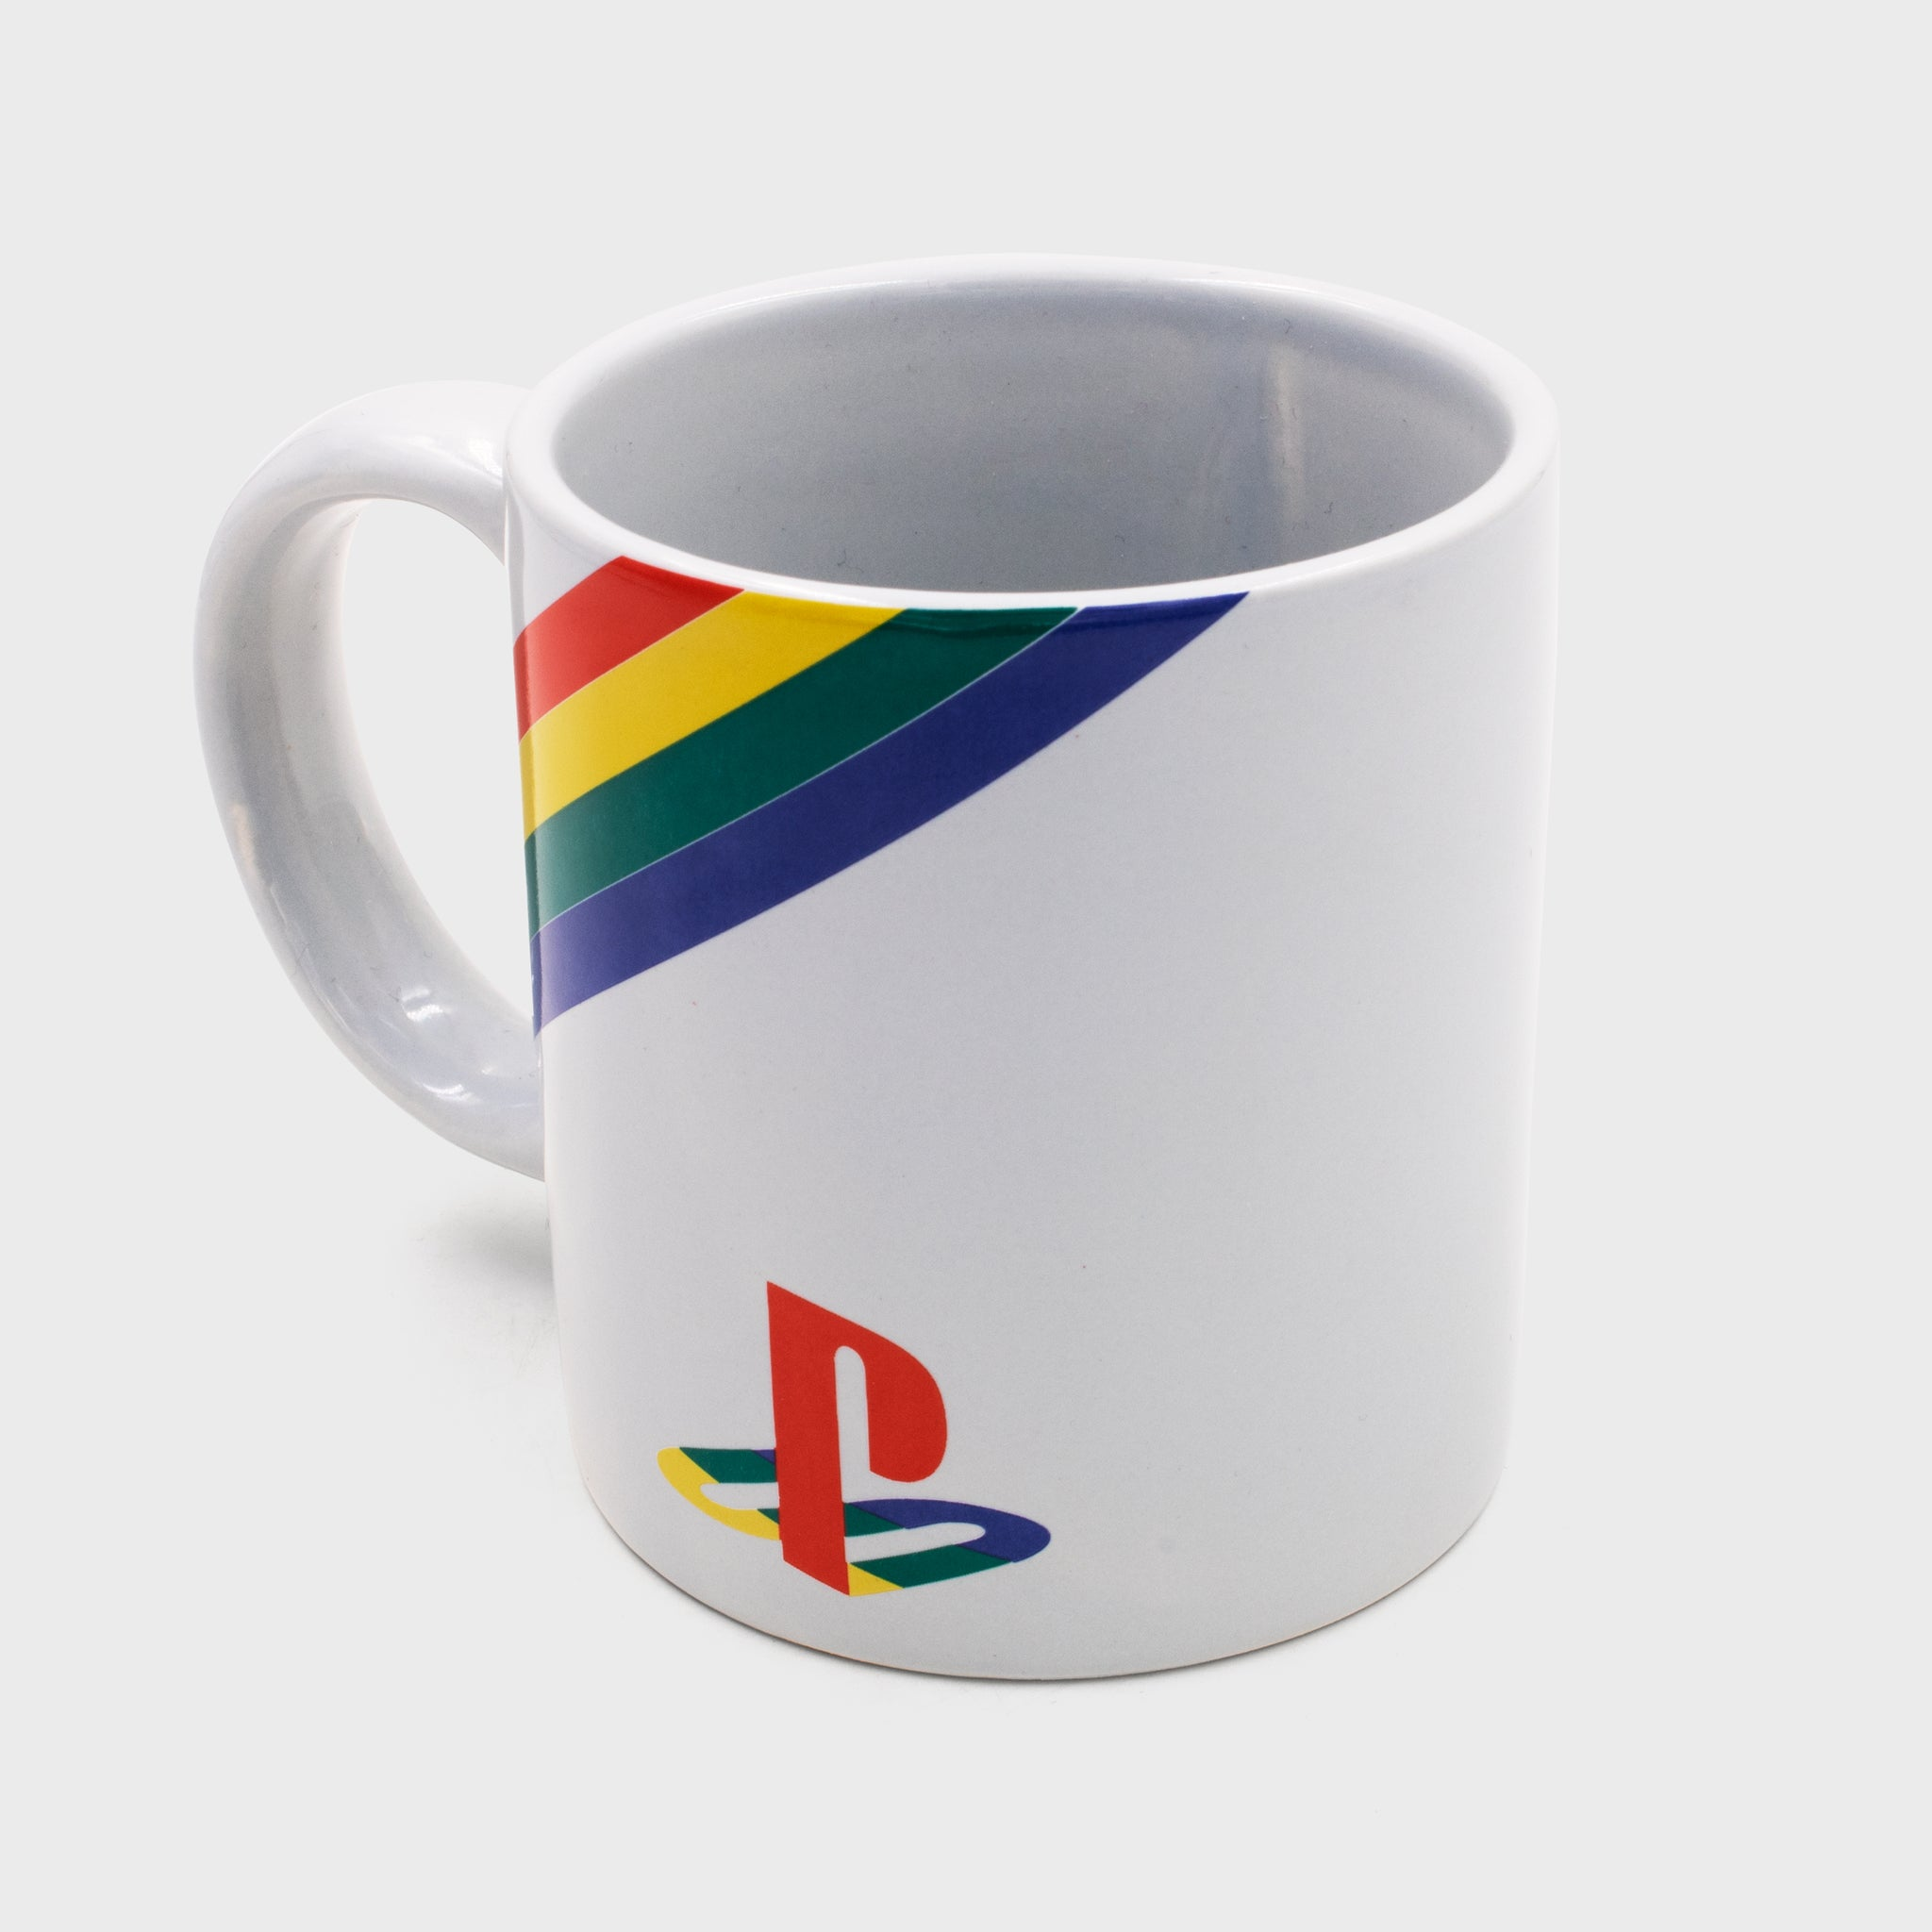 playstation ps4 ps video games console classic old school retro 90s gamestop retail box accessories collectibles exclusive culturefly mug cup kitchenware drinkware